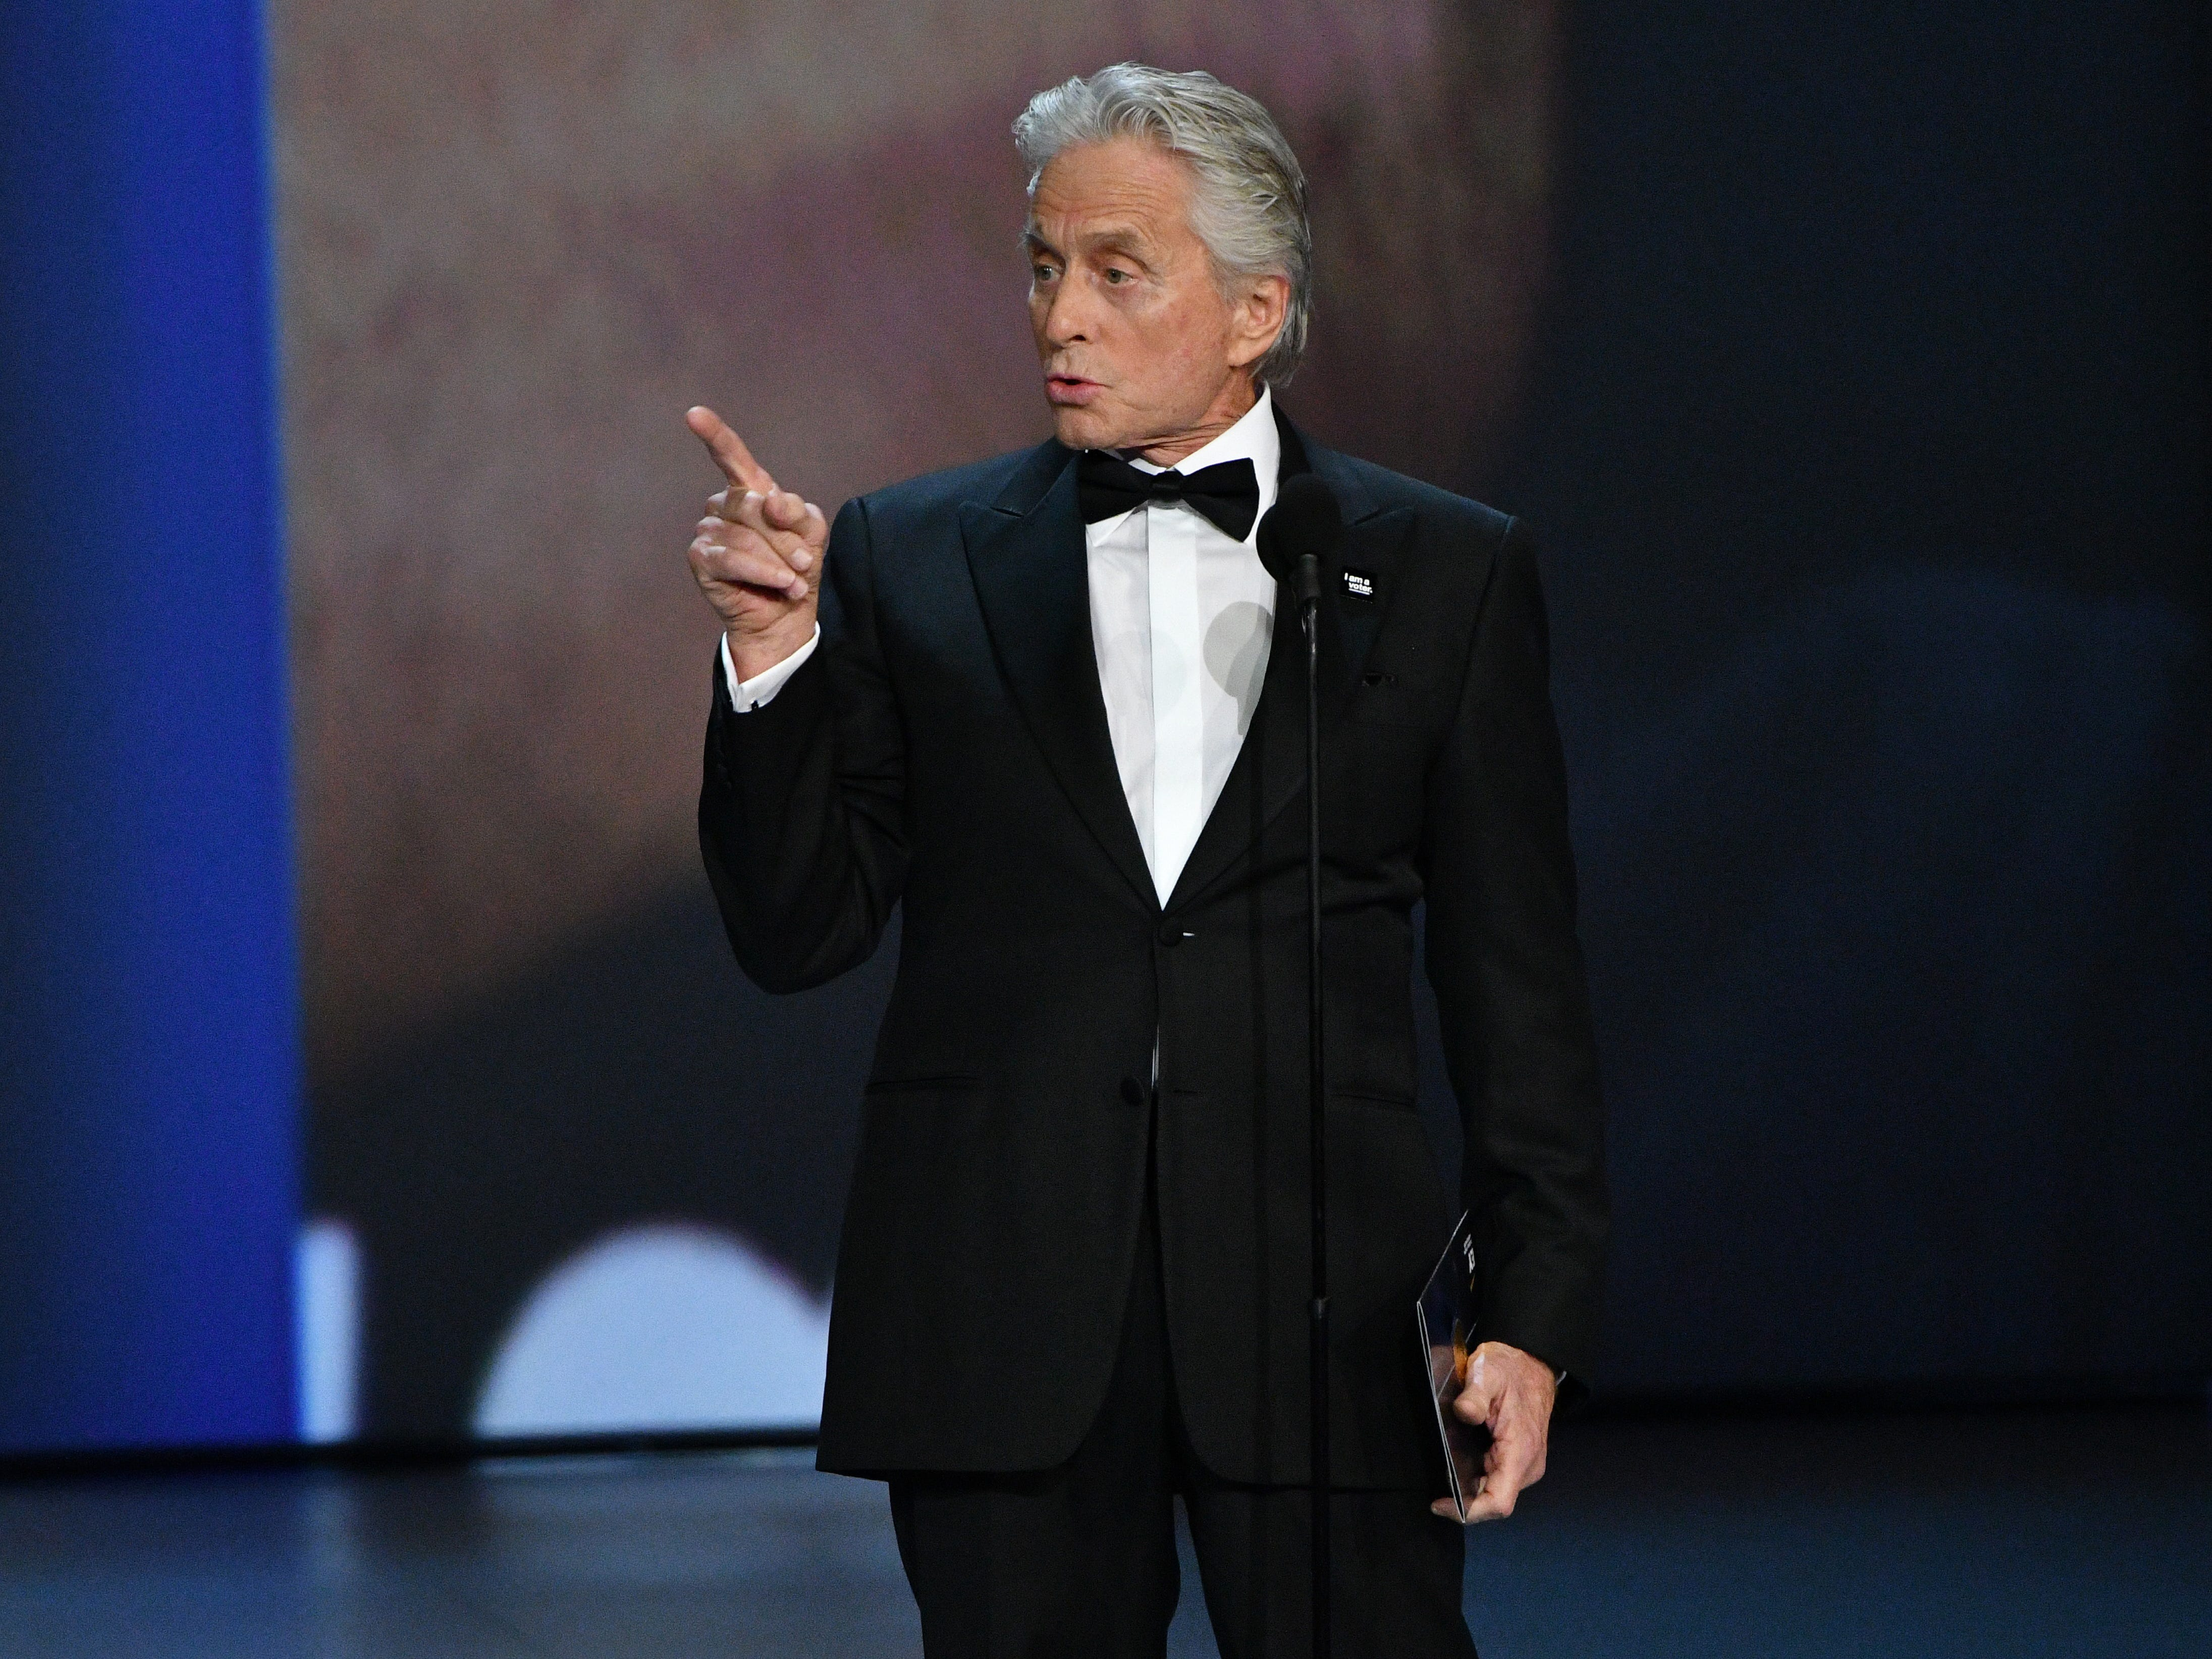 Michael Douglas presents the award for lead actor in a comedy series.